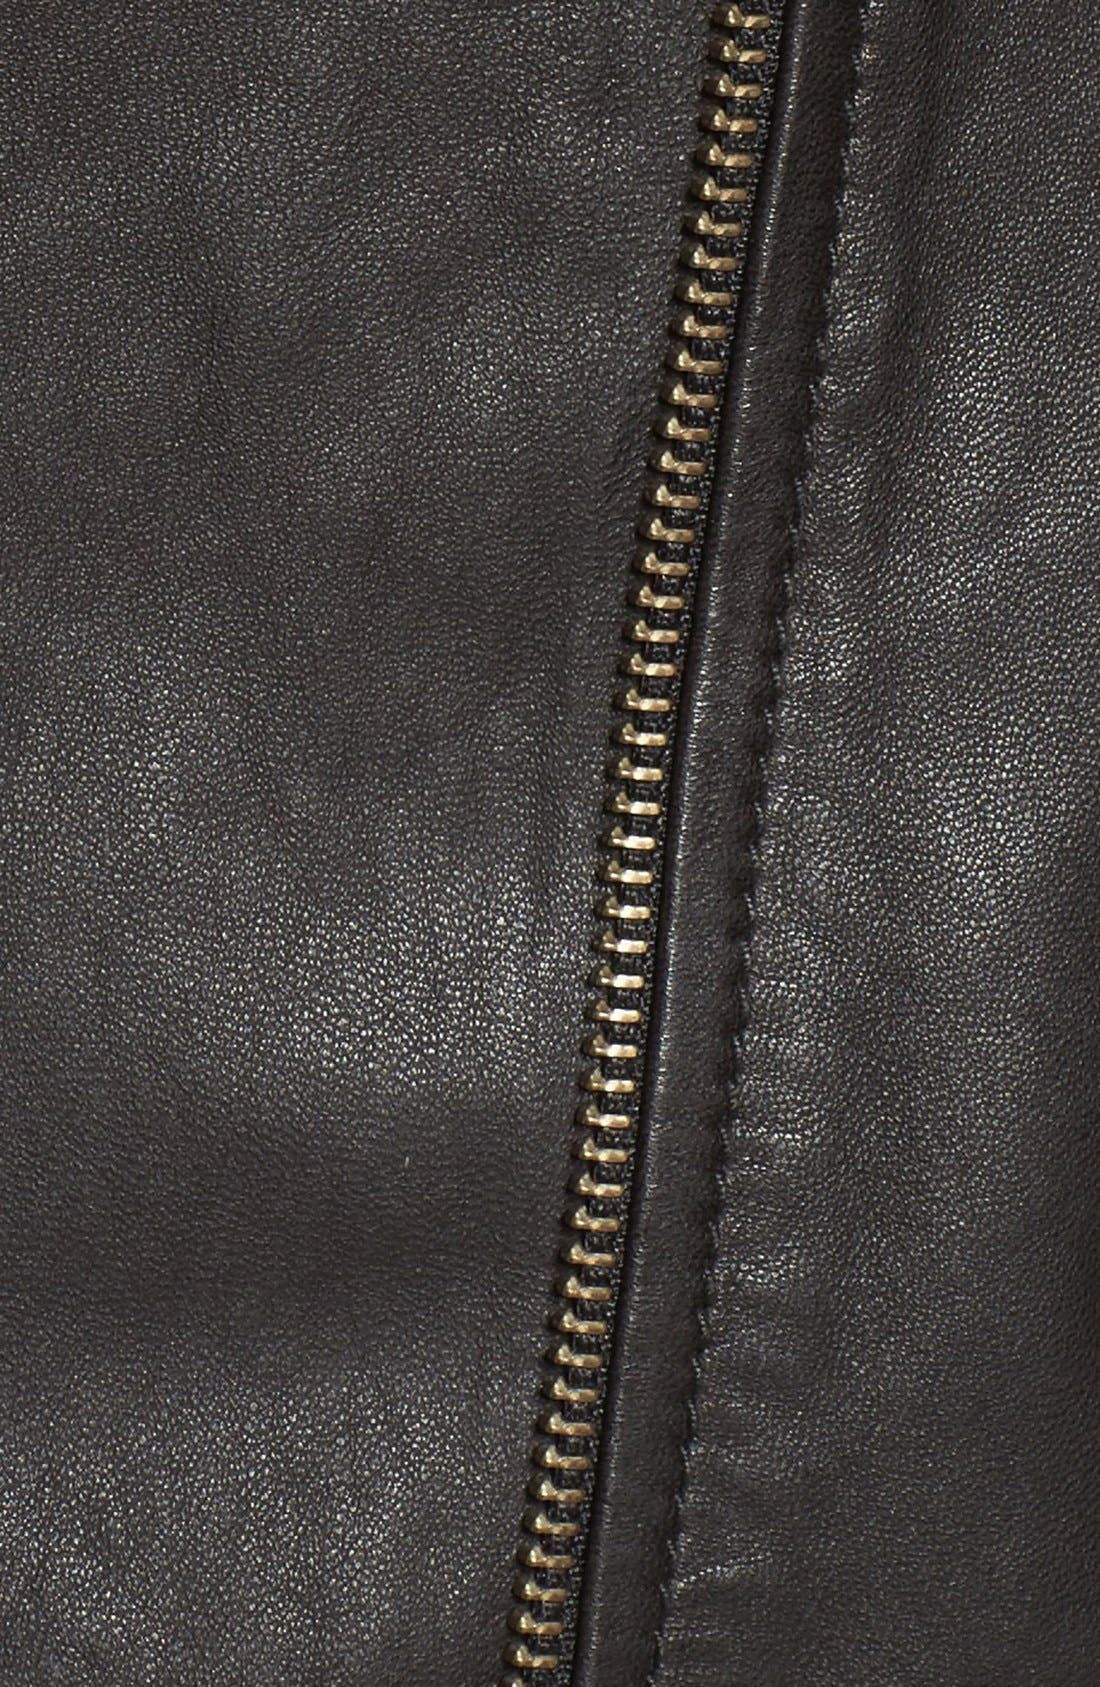 Quilted Leather Moto Jacket,                             Alternate thumbnail 8, color,                             001